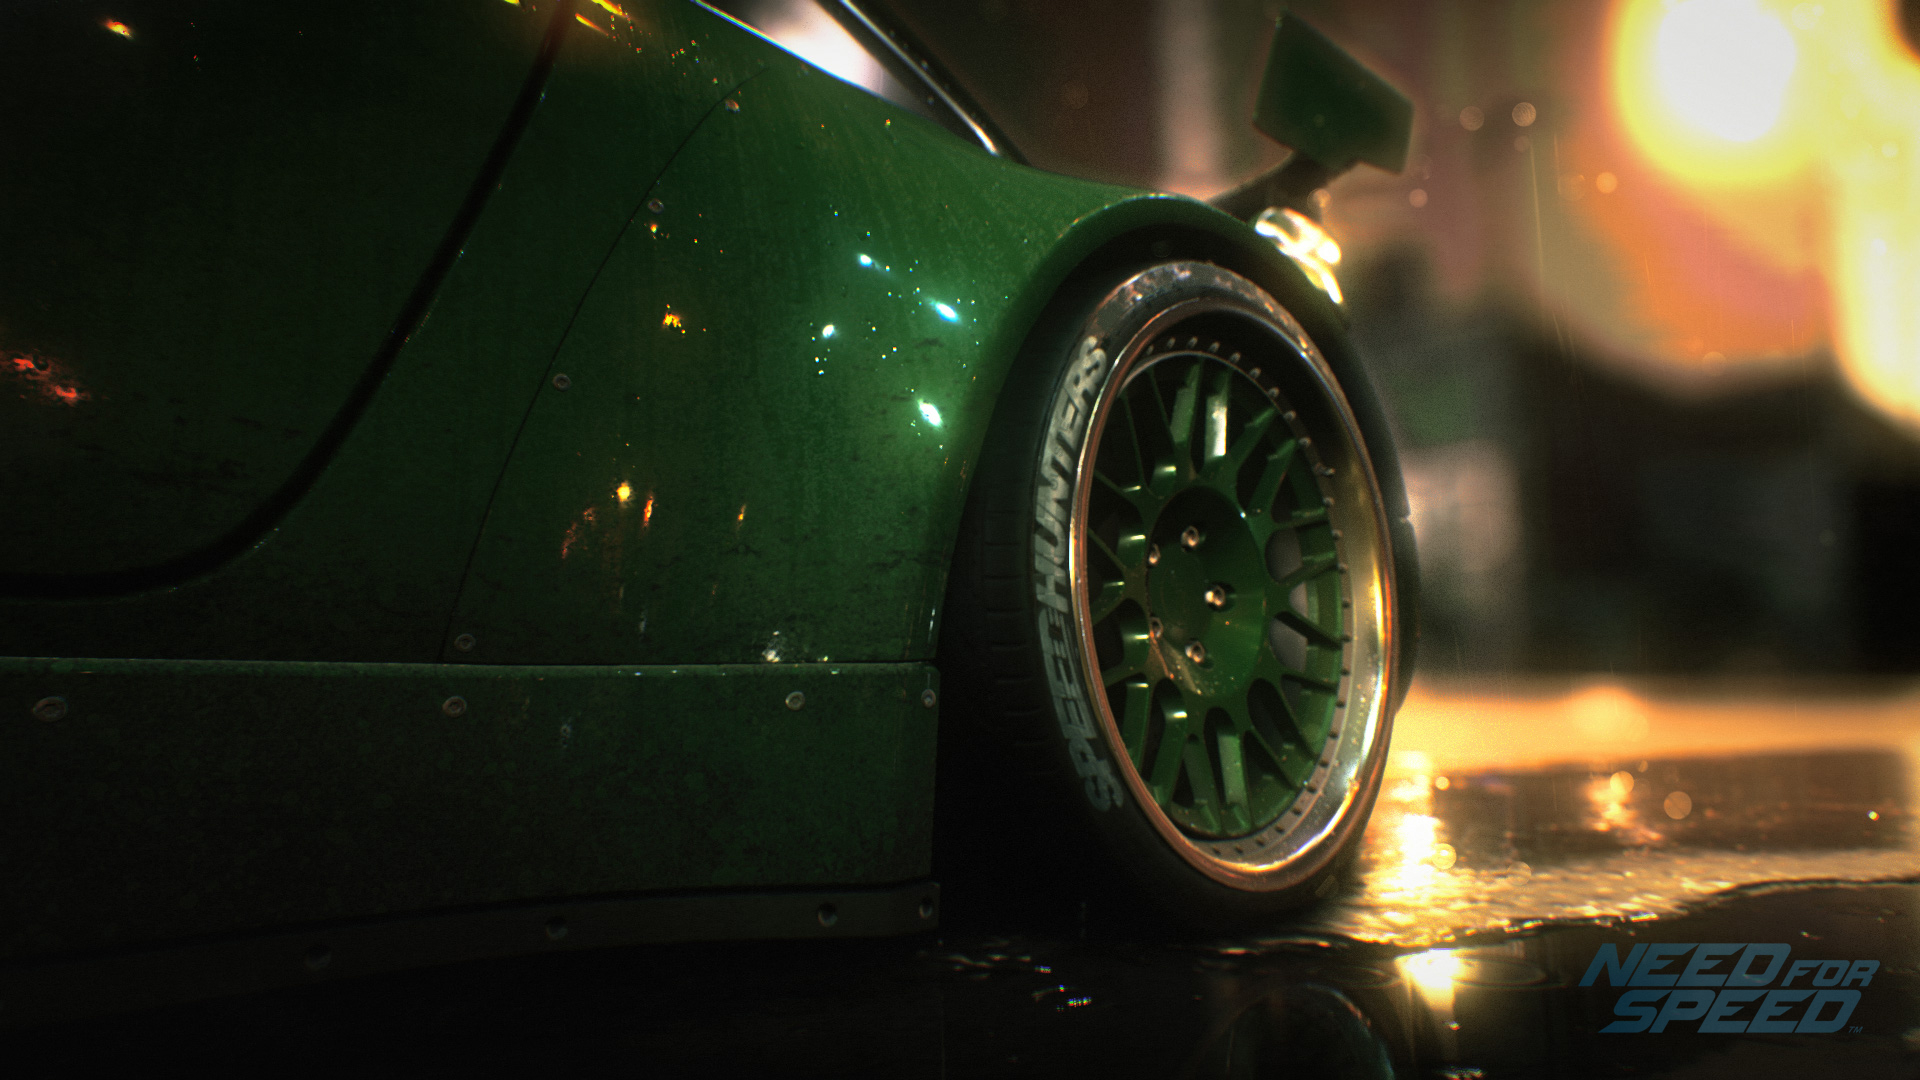 Need For Speed 2015 Wallpaper By Elizanna On Deviantart